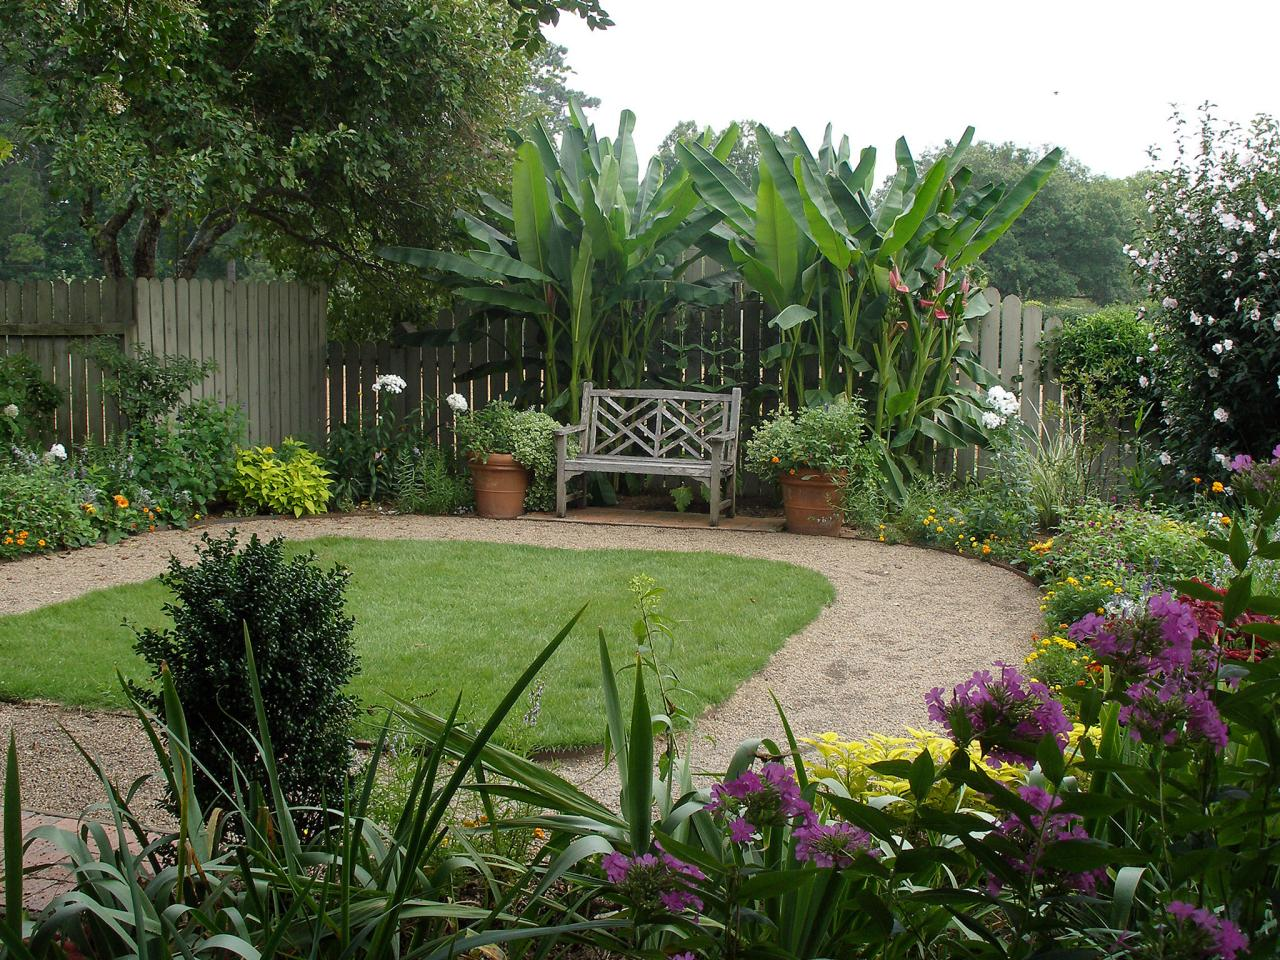 Backyard Design Basics: Basic Landscaping Tips For An Empty Yard